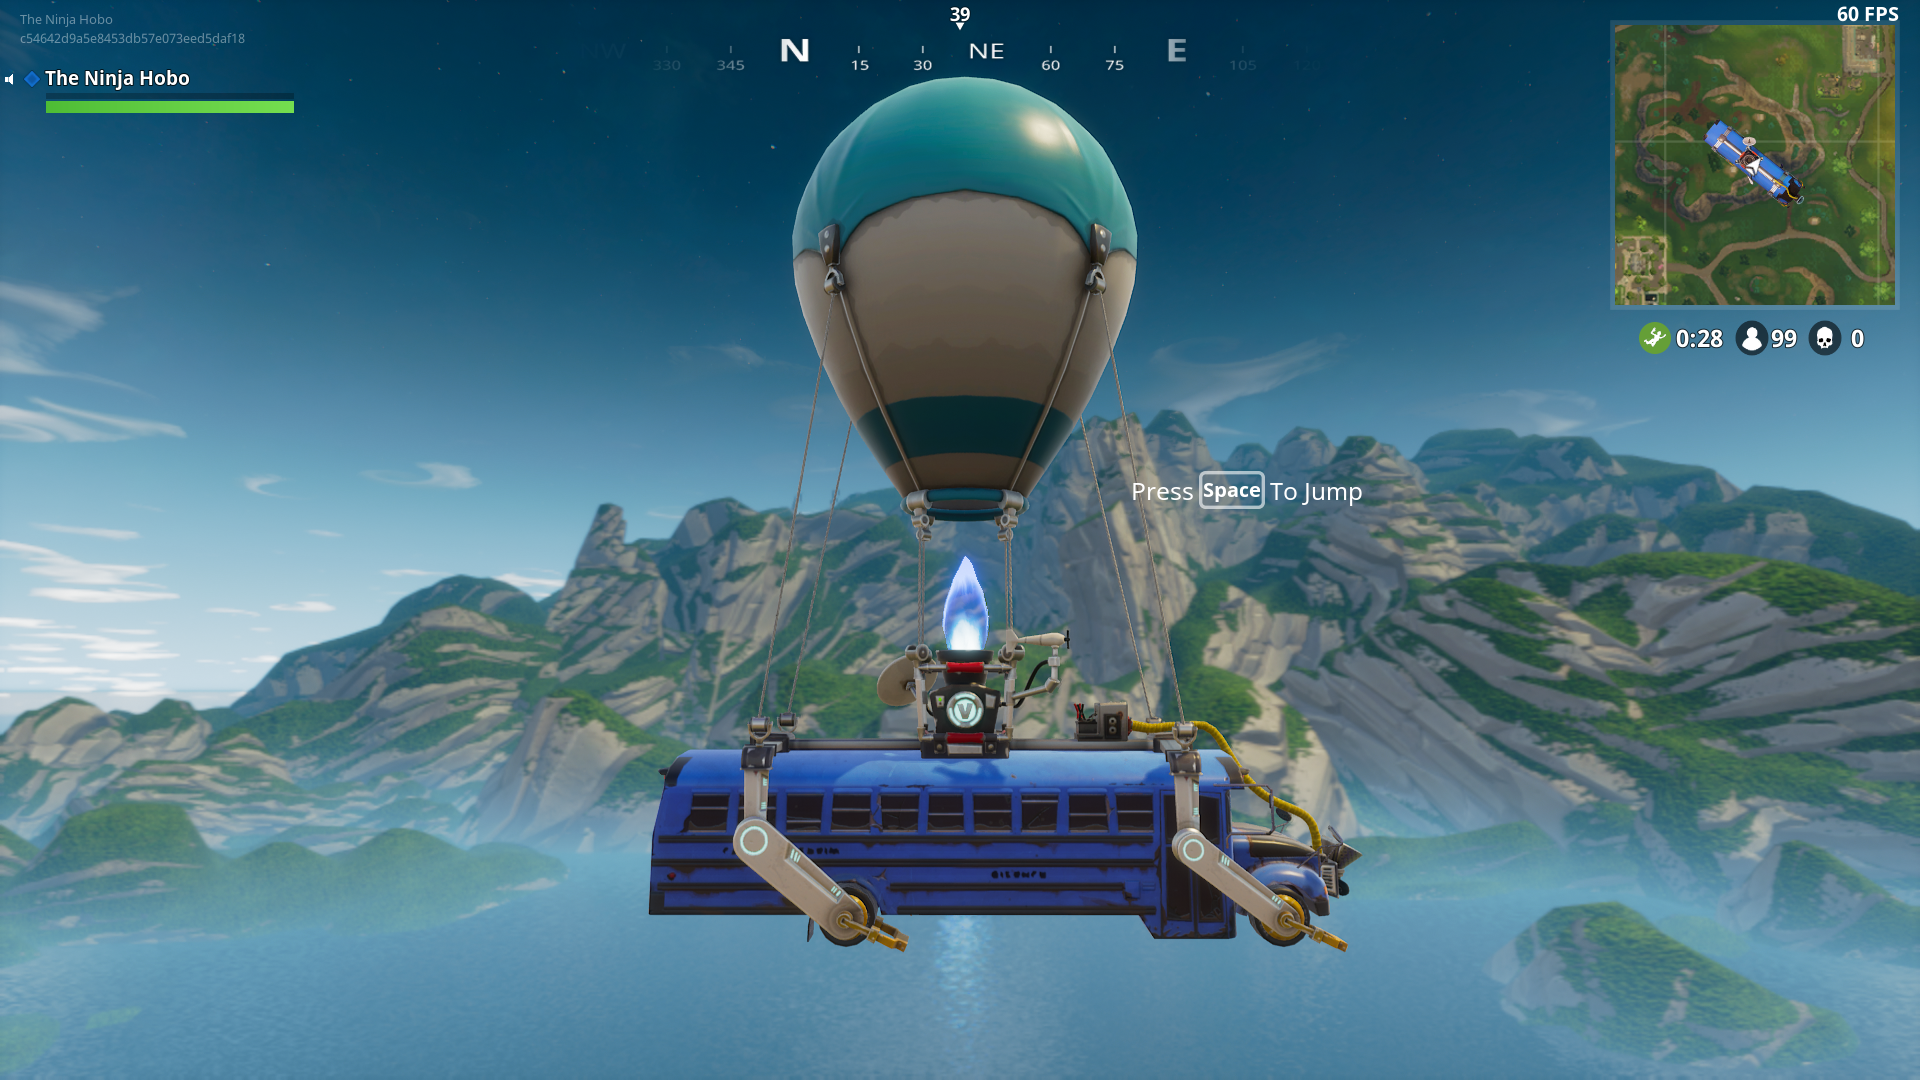 Science Explains The Impossible Physics Of The Fortnite Battle Bus - science explains the impossible physics of the fortnite battle bus inverse